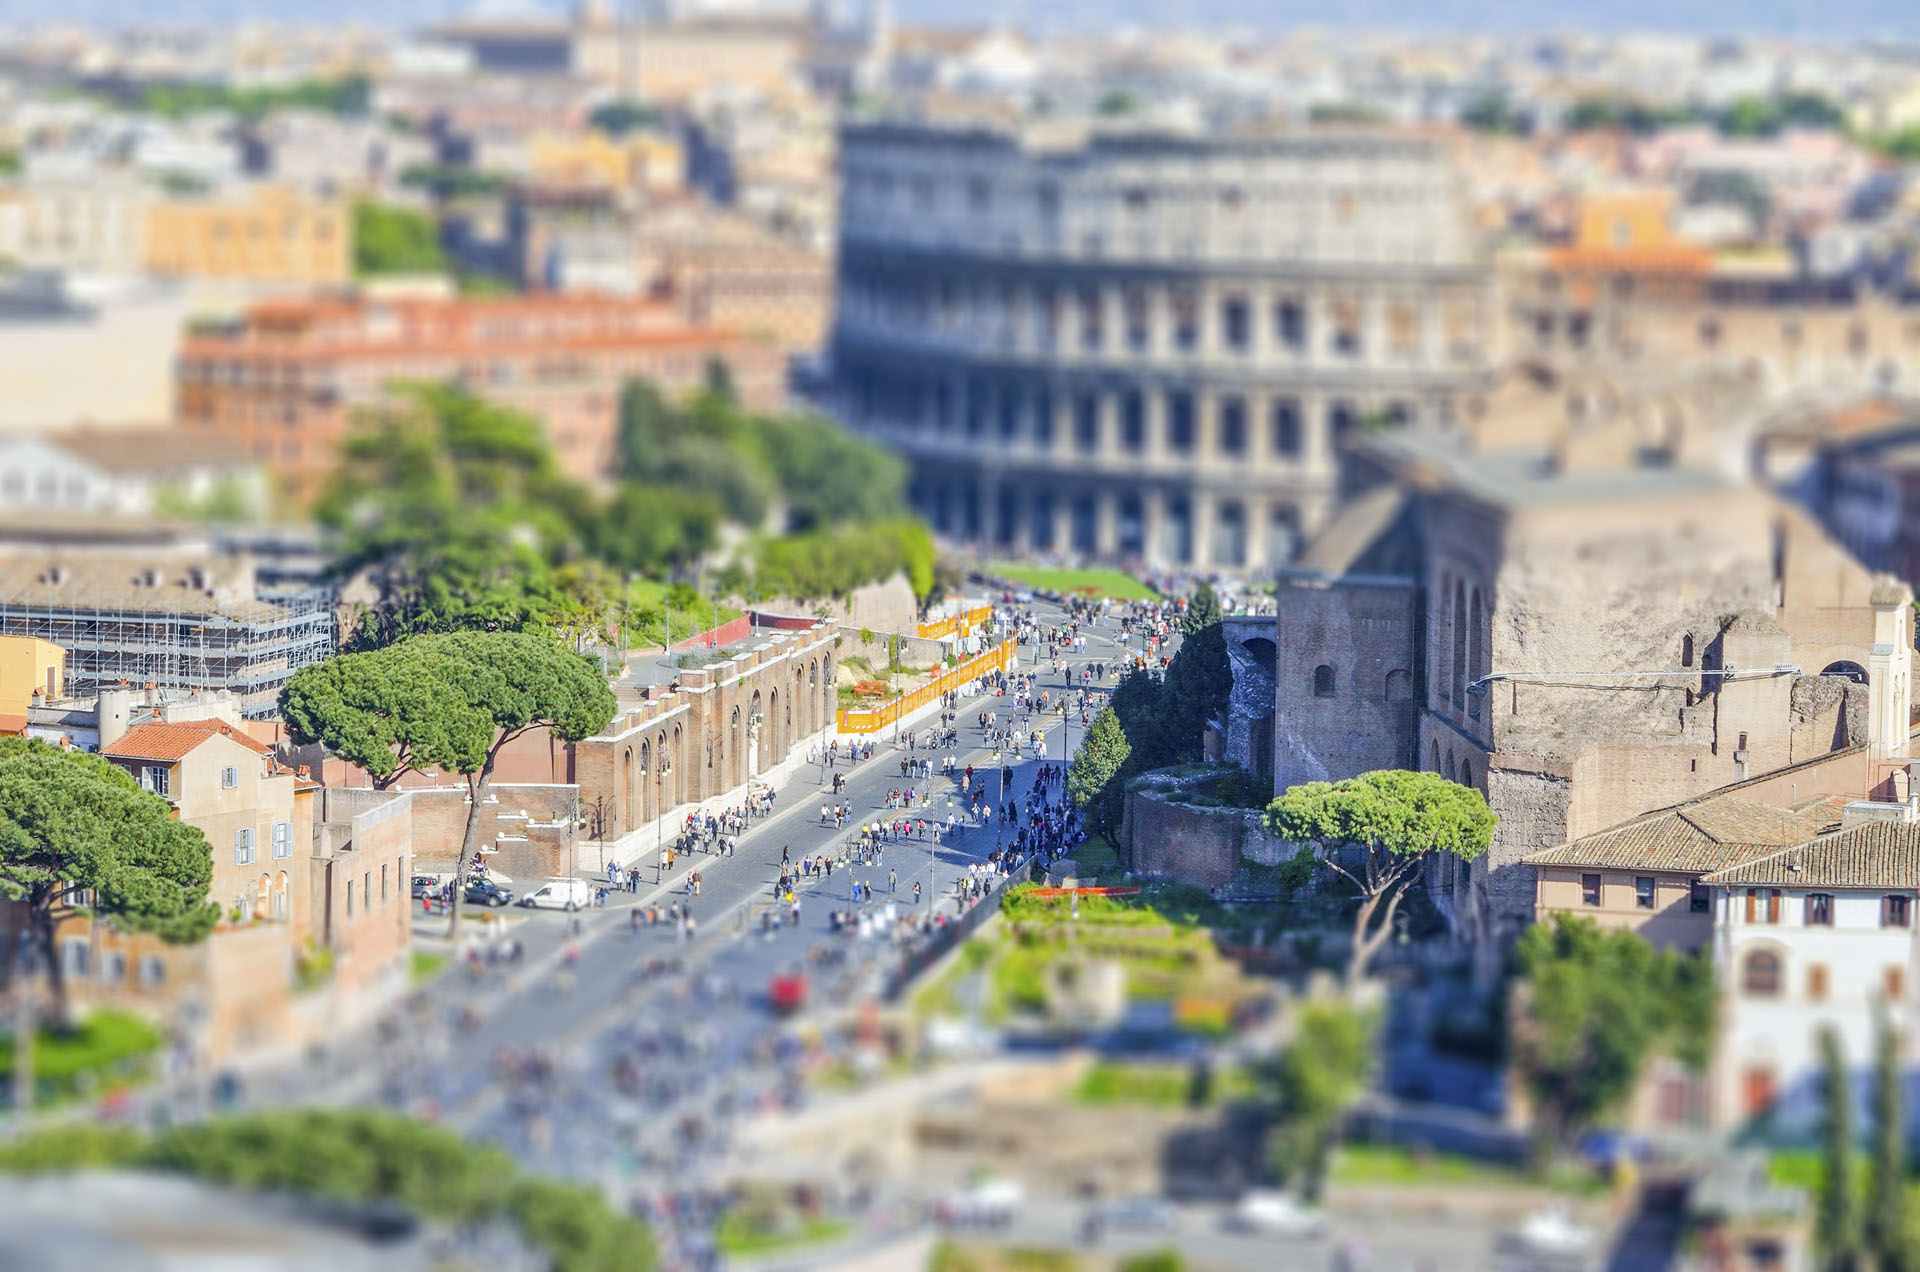 The Colosseum and the Roman Forum, Rome, Italy